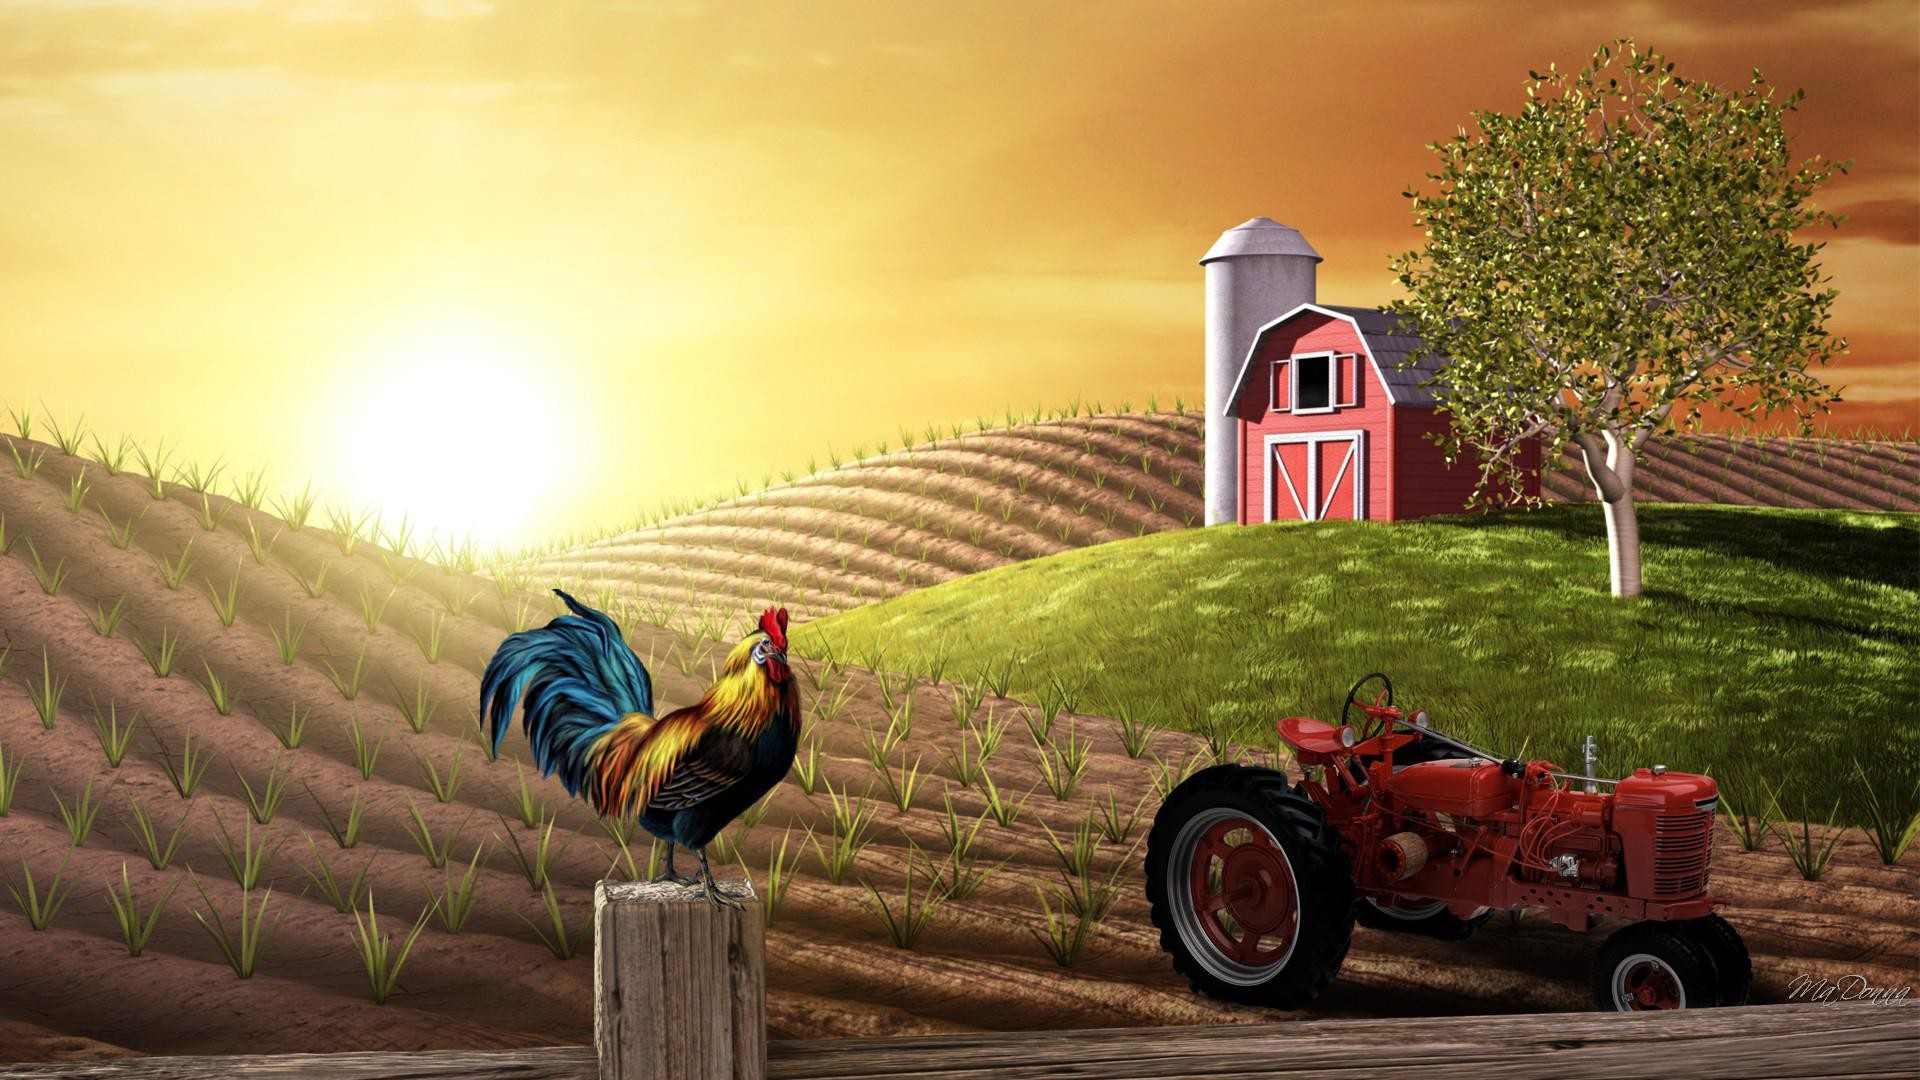 Res: 1920x1080, 12.28.14, Farm Full HD Wallpapers - for PC & Mac, Laptop, Tablet, Mobile  Phone